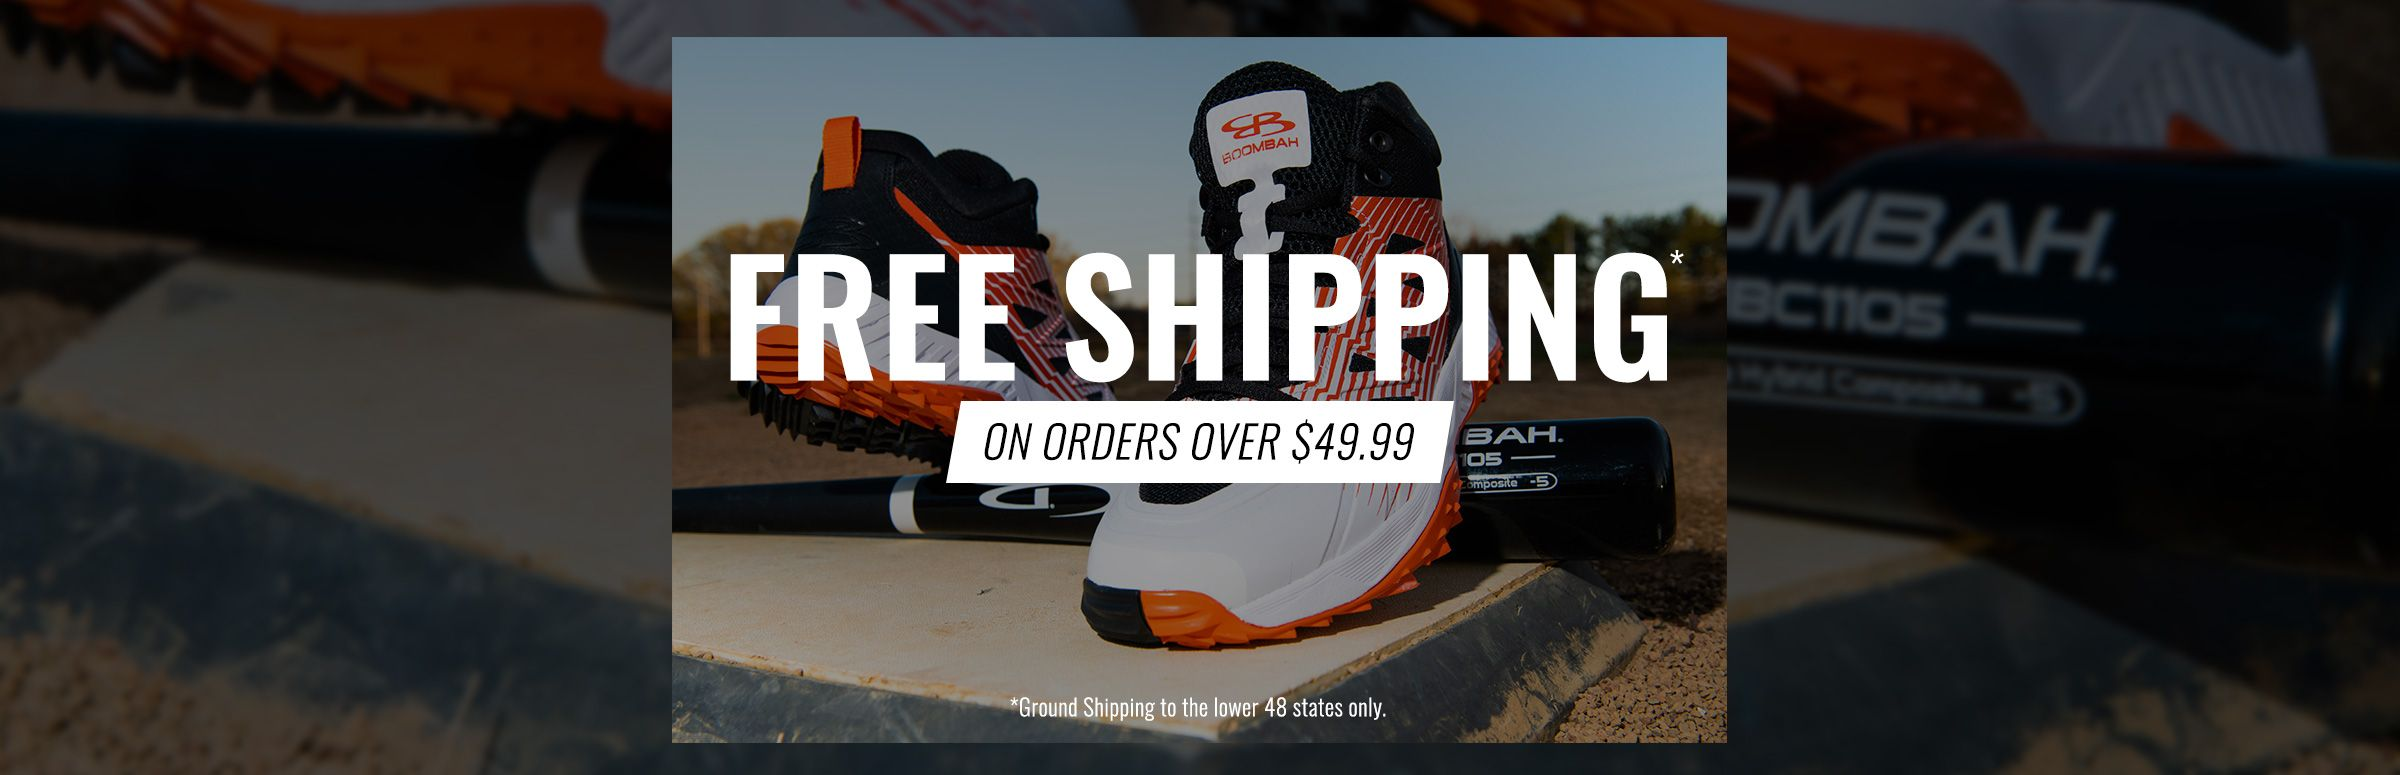 Free Ground Shipping On Orders Over $49.99